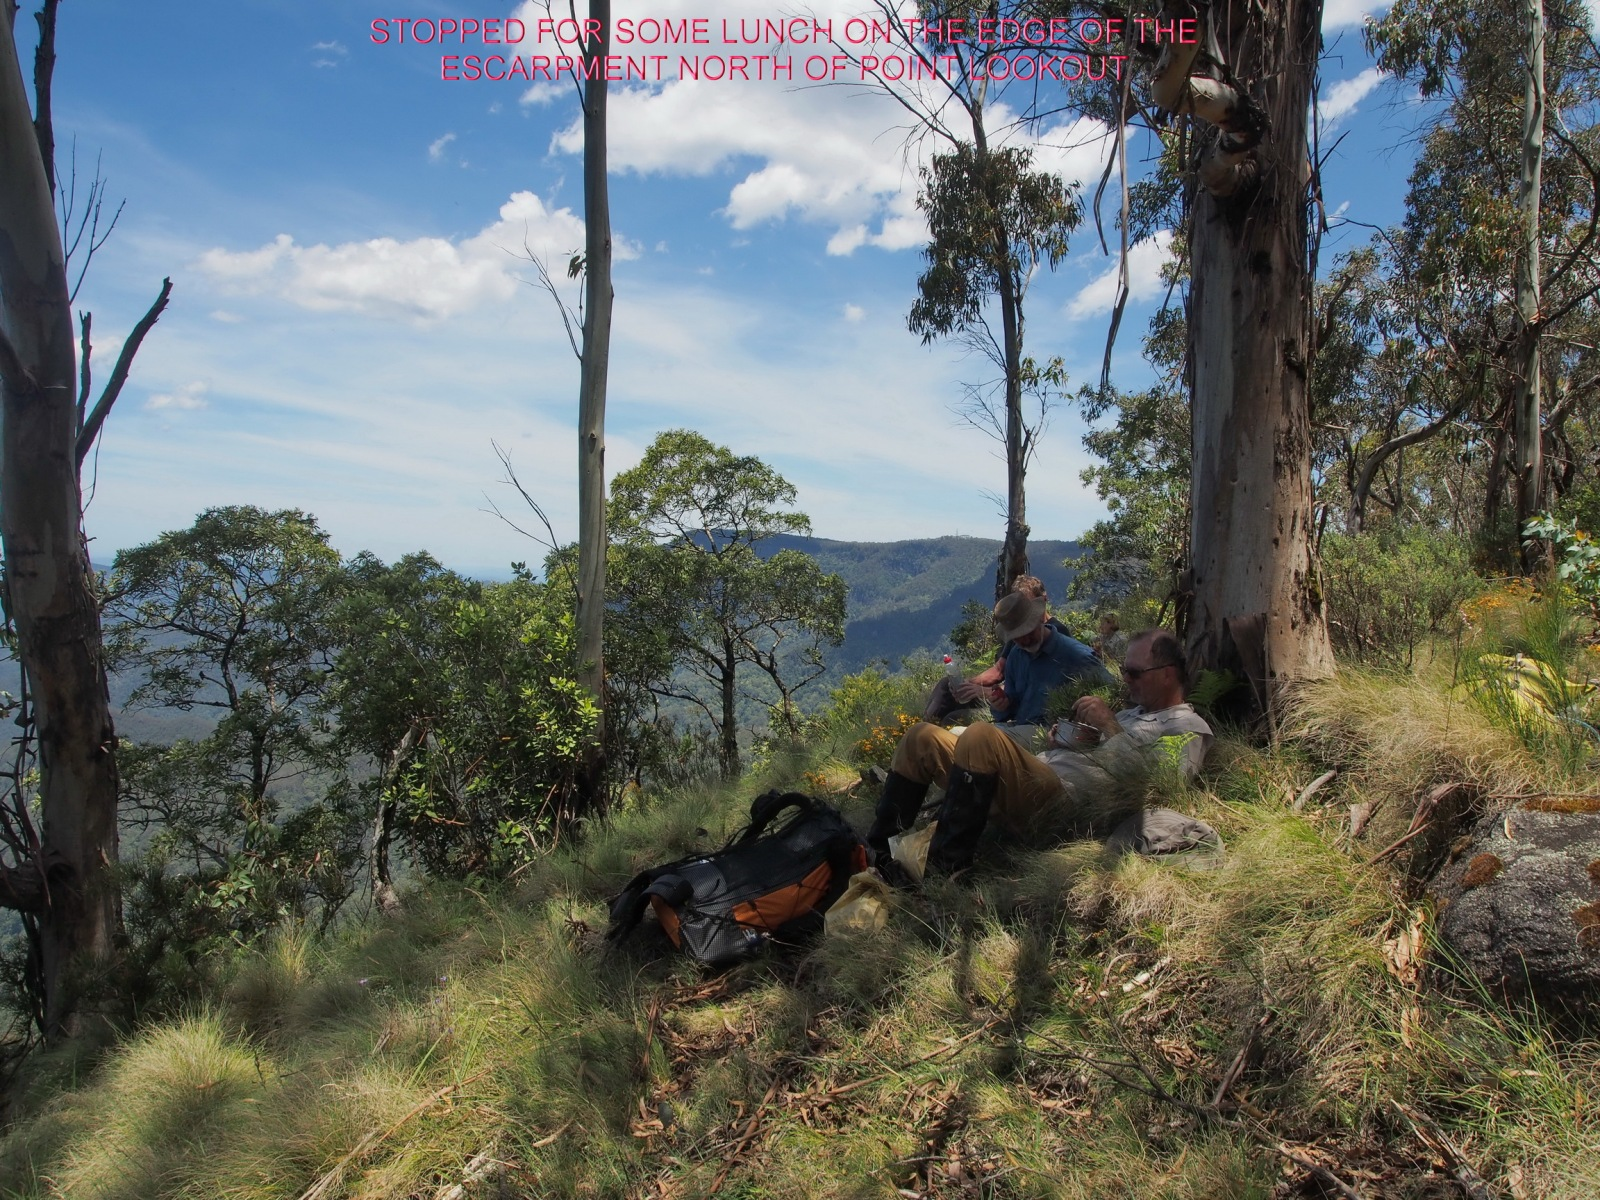 STOPPED FOR SOME LUNCH ON THE EDGE OF THE ESCARPMENT NORTH OF POINT LOOKOUT